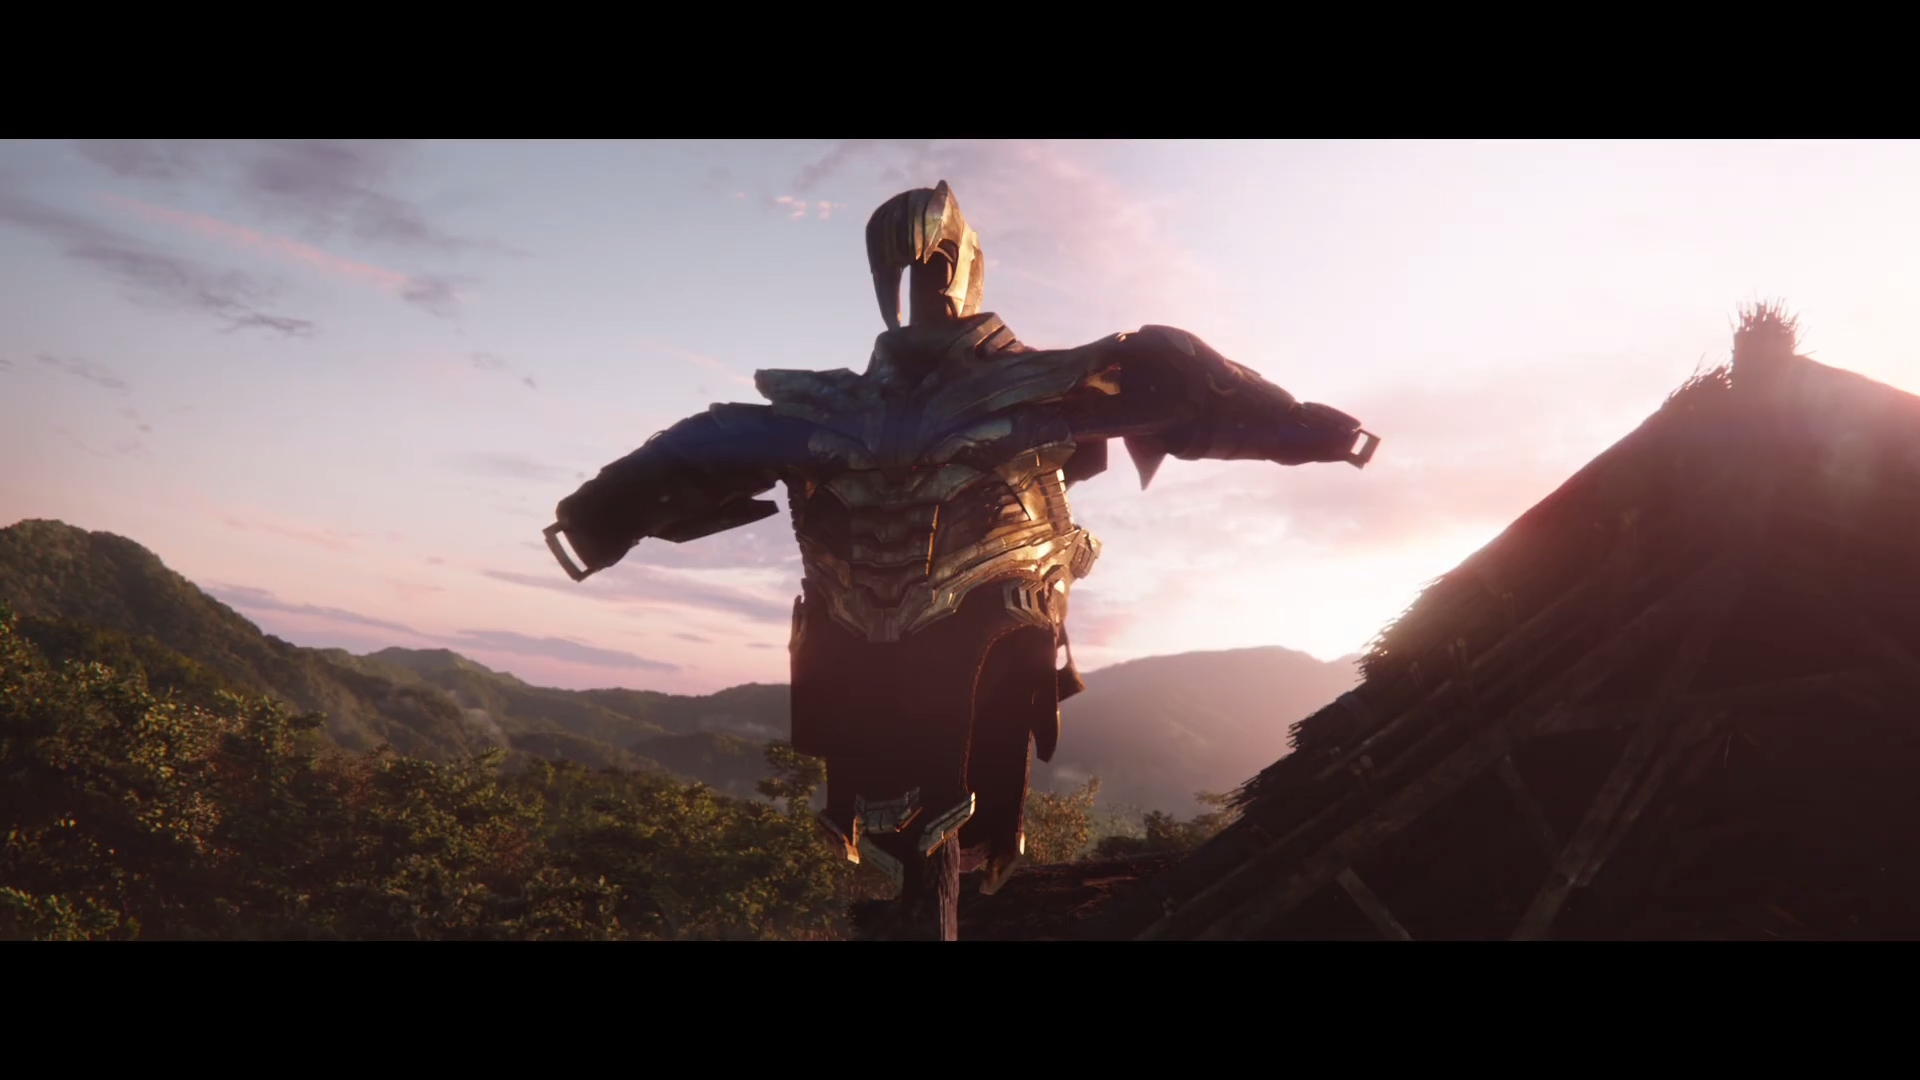 Avengers: Endgame trailer beats Infinity War's record for most views